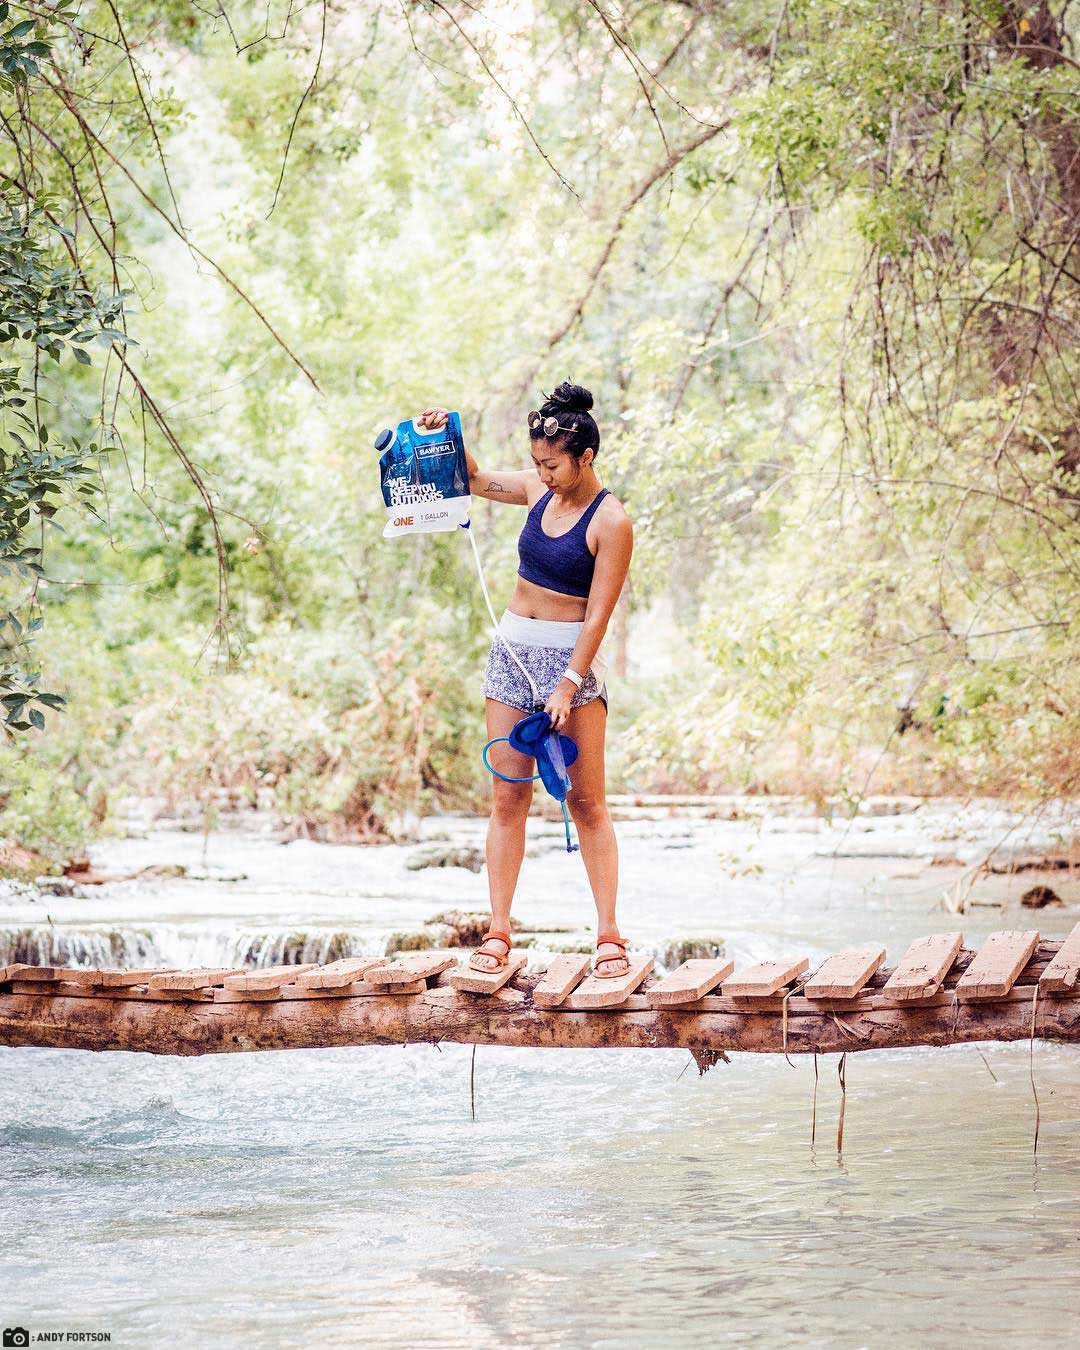 A Woman Uses a Sawyer Gravity Filtration System to Fill her Hydration Pack